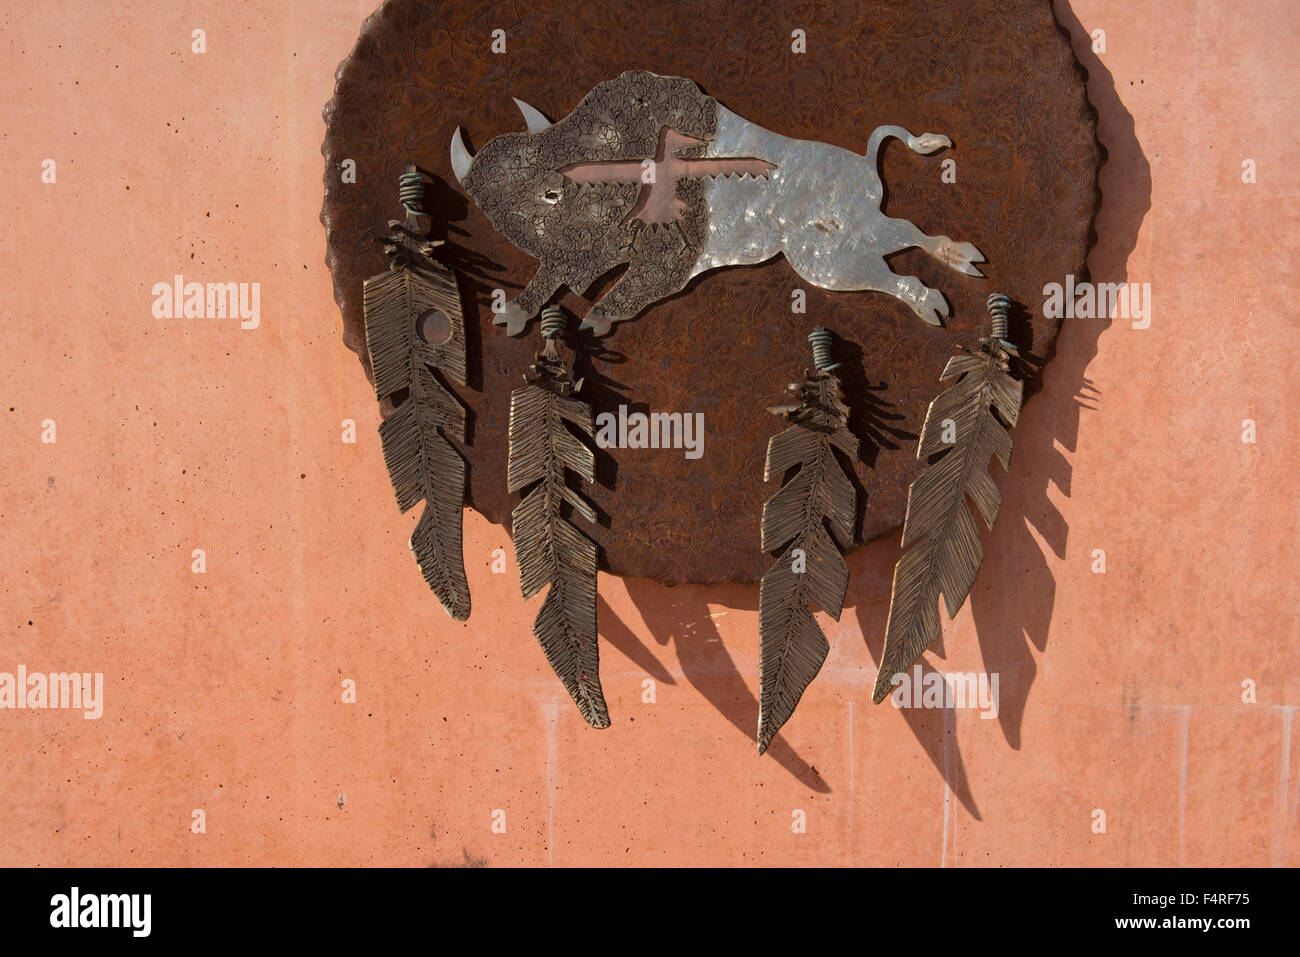 Crow Agency Stock Photos Crow Agency Stock Images Alamy